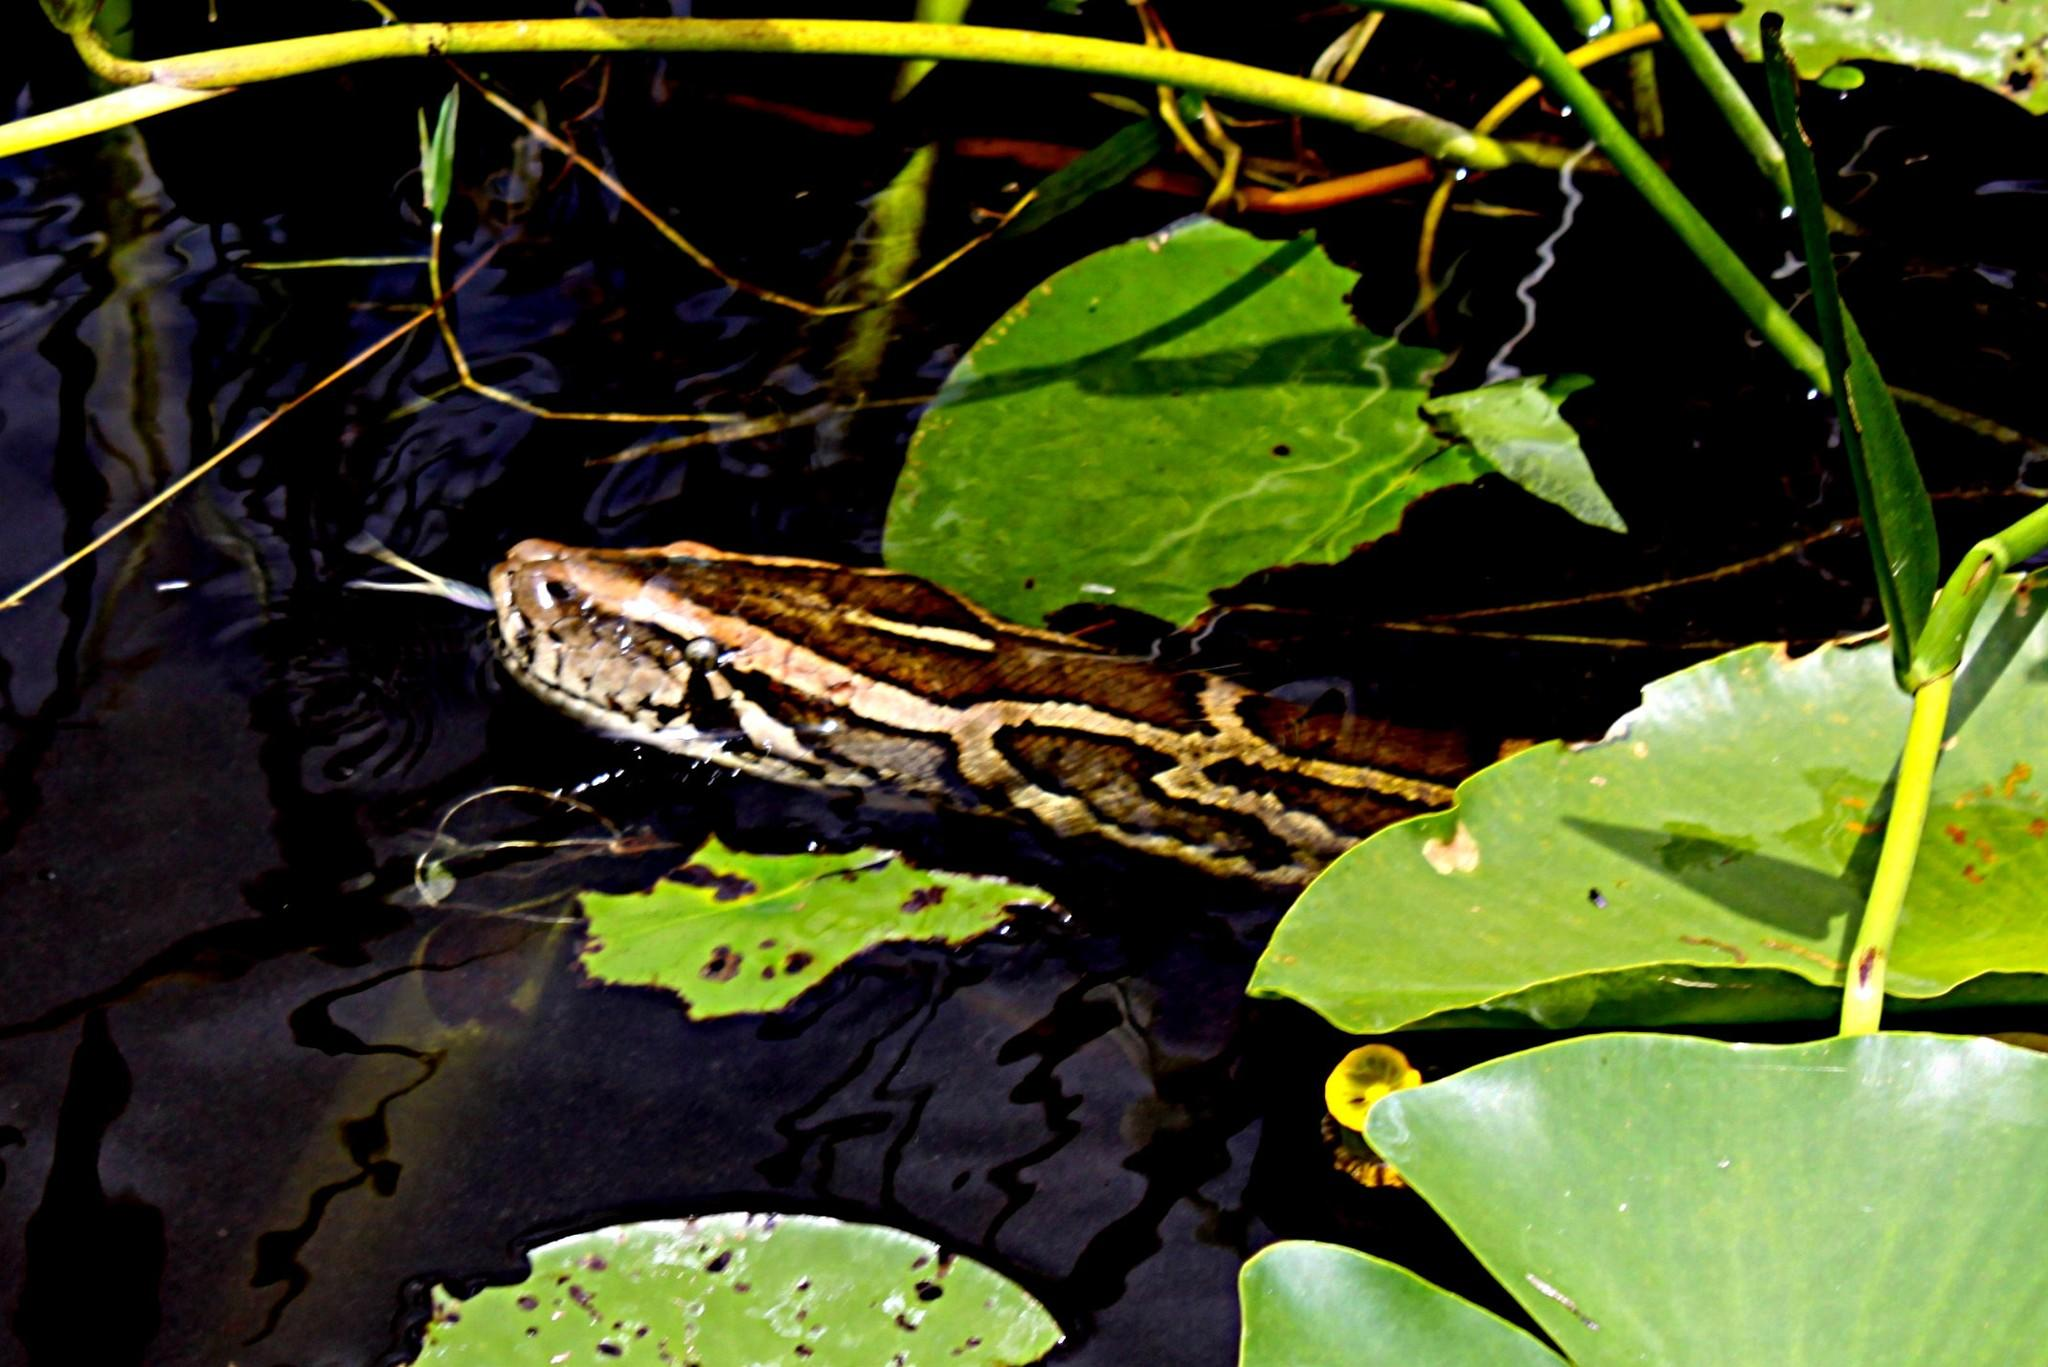 A Burmese python estimated at more than 16 feet long darts its tongue as it swims through the lily pads in the L-67A Canal in the Everglades. APril 30, 2013